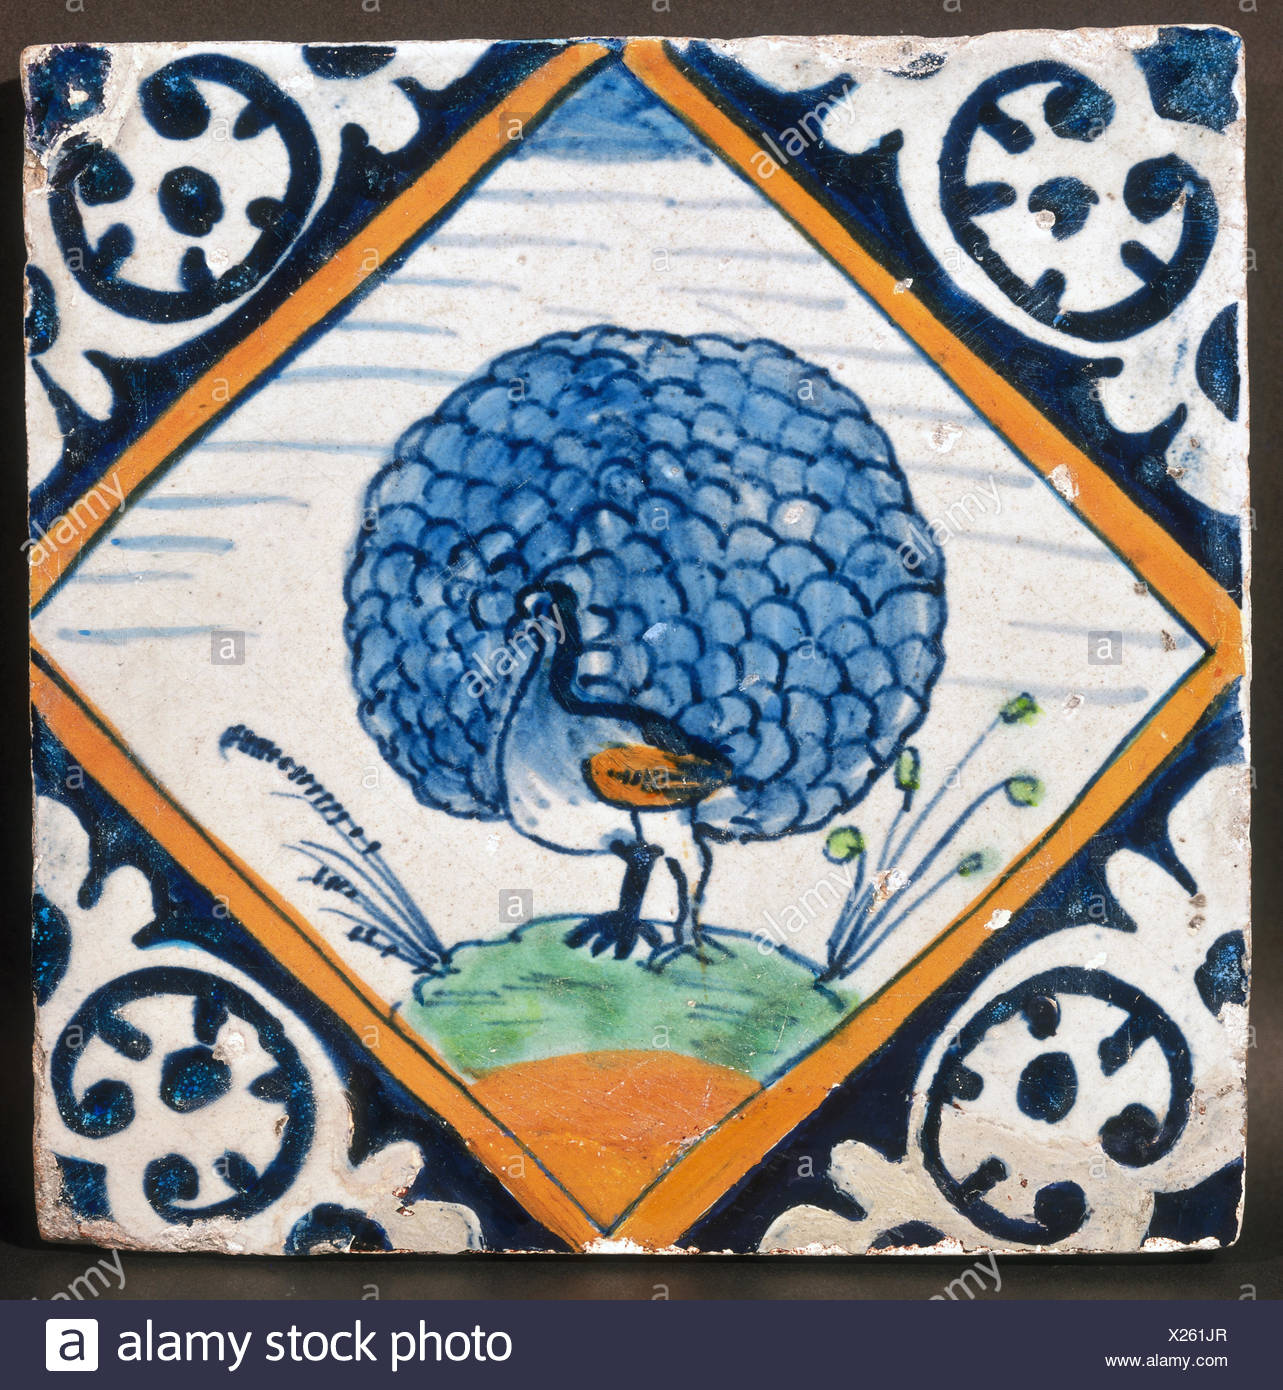 fine arts, decorative tiles, tile with peacock illustration, Delft, early 17th century, 13 x 13 cm, De Porceleyne Fles, Delft, Artist's Copyright has not to be cleared - Stock Image